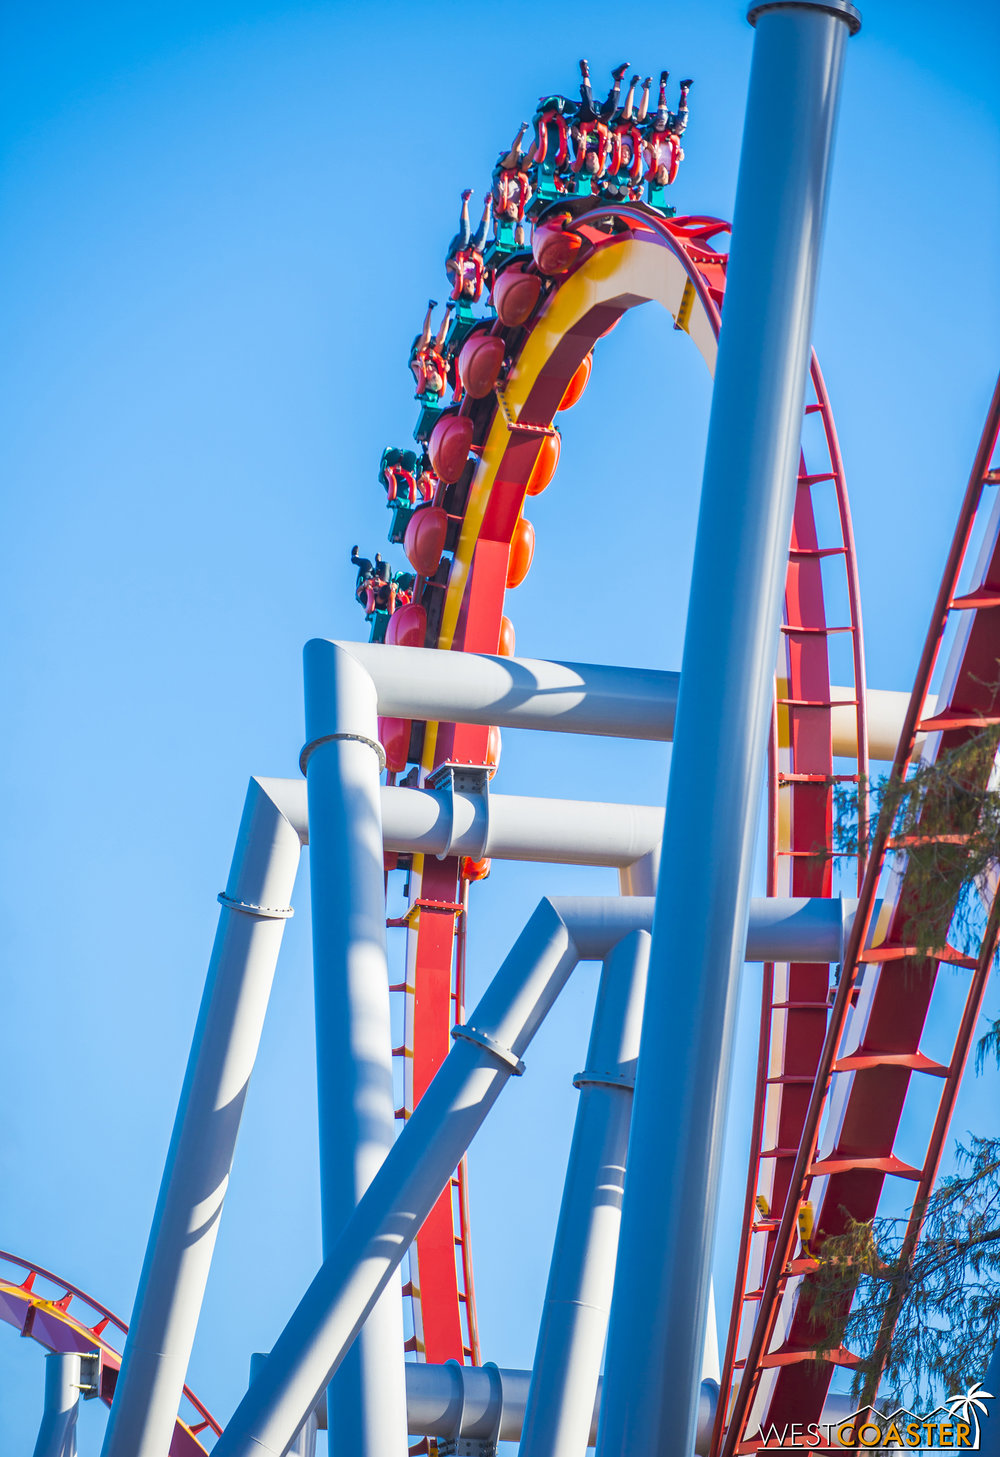 Silver Bullet continues to thrill riders of all ages.